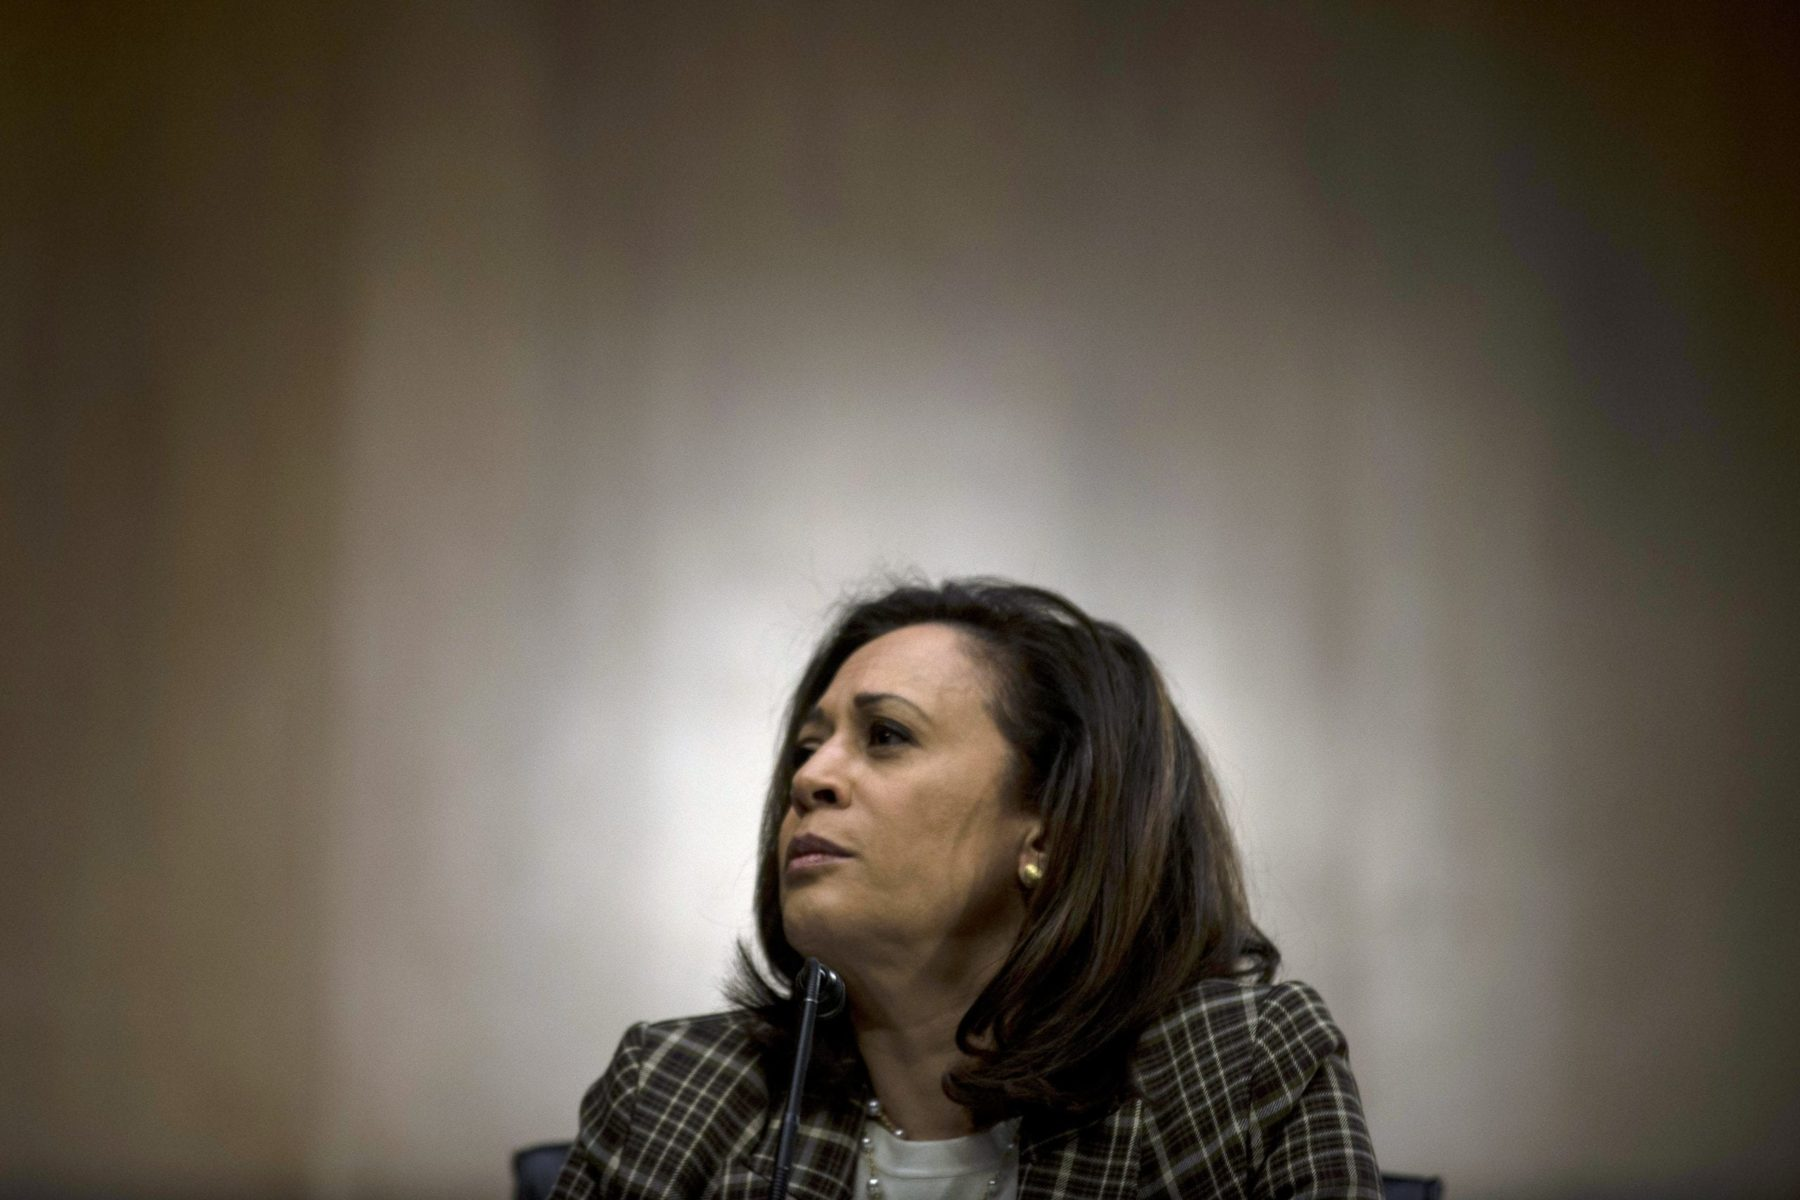 Kamala Harris against a solid background.